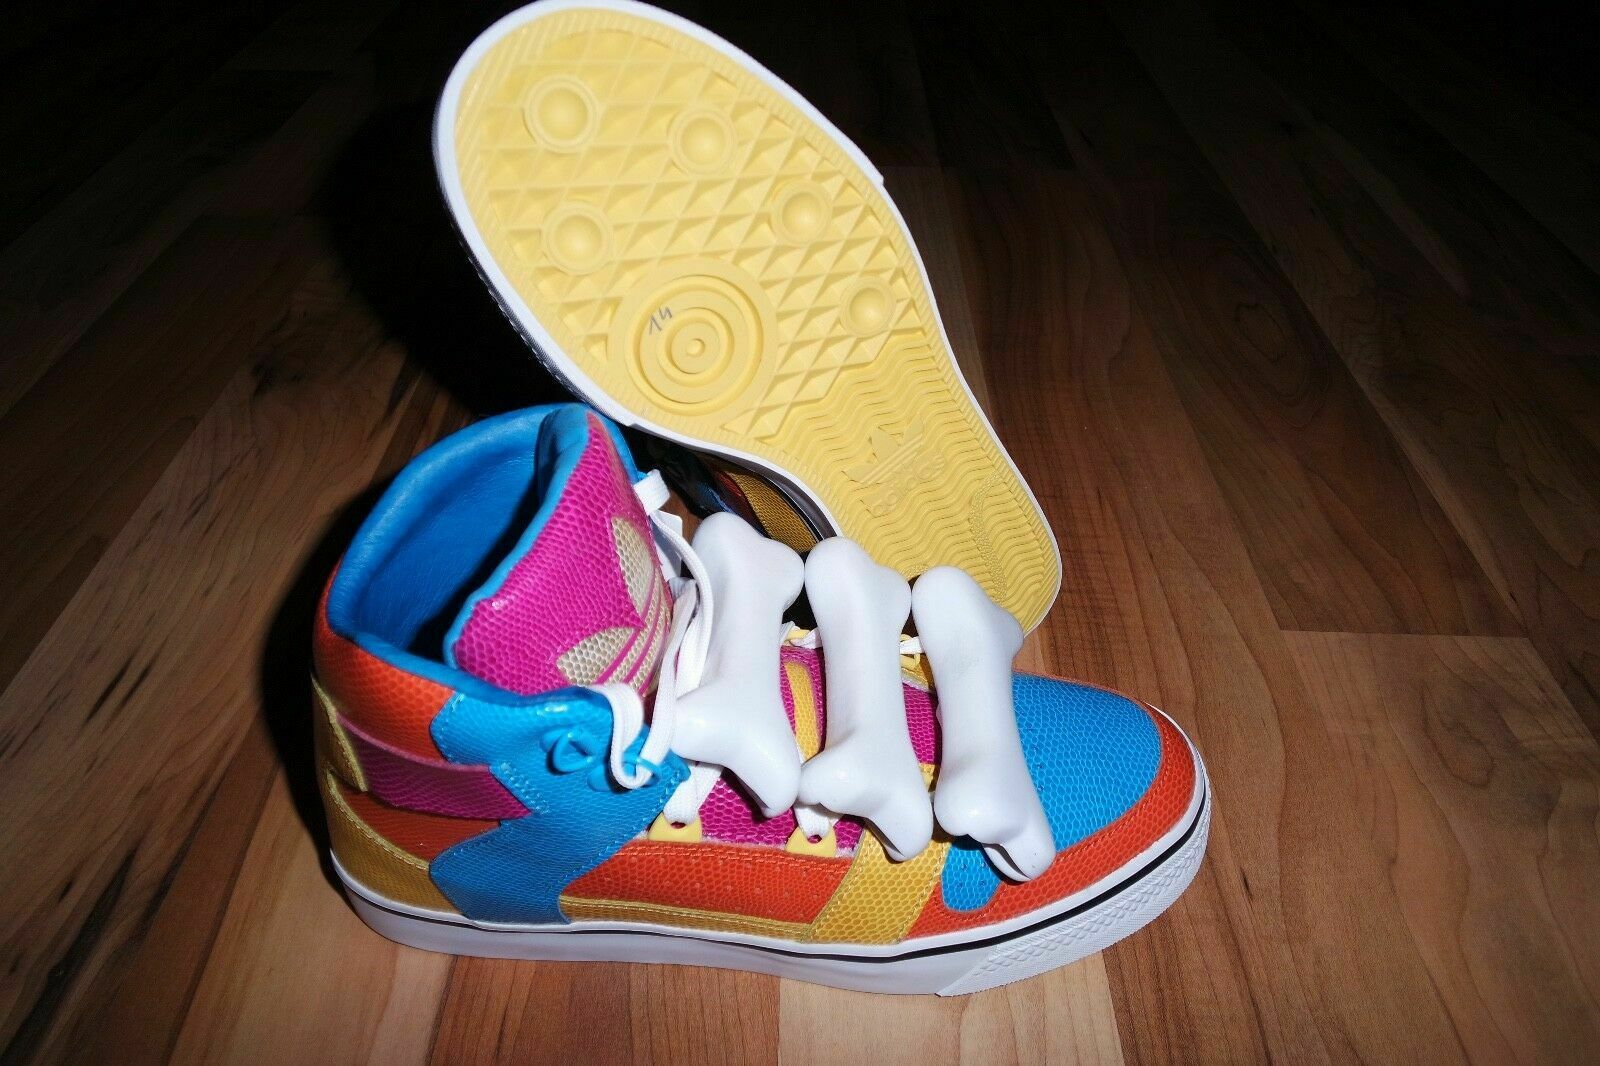 Adidas ObyO X JEREMY SCOTT JS BONES MULTICOLOR SHOES UNISEX US 6.5  3